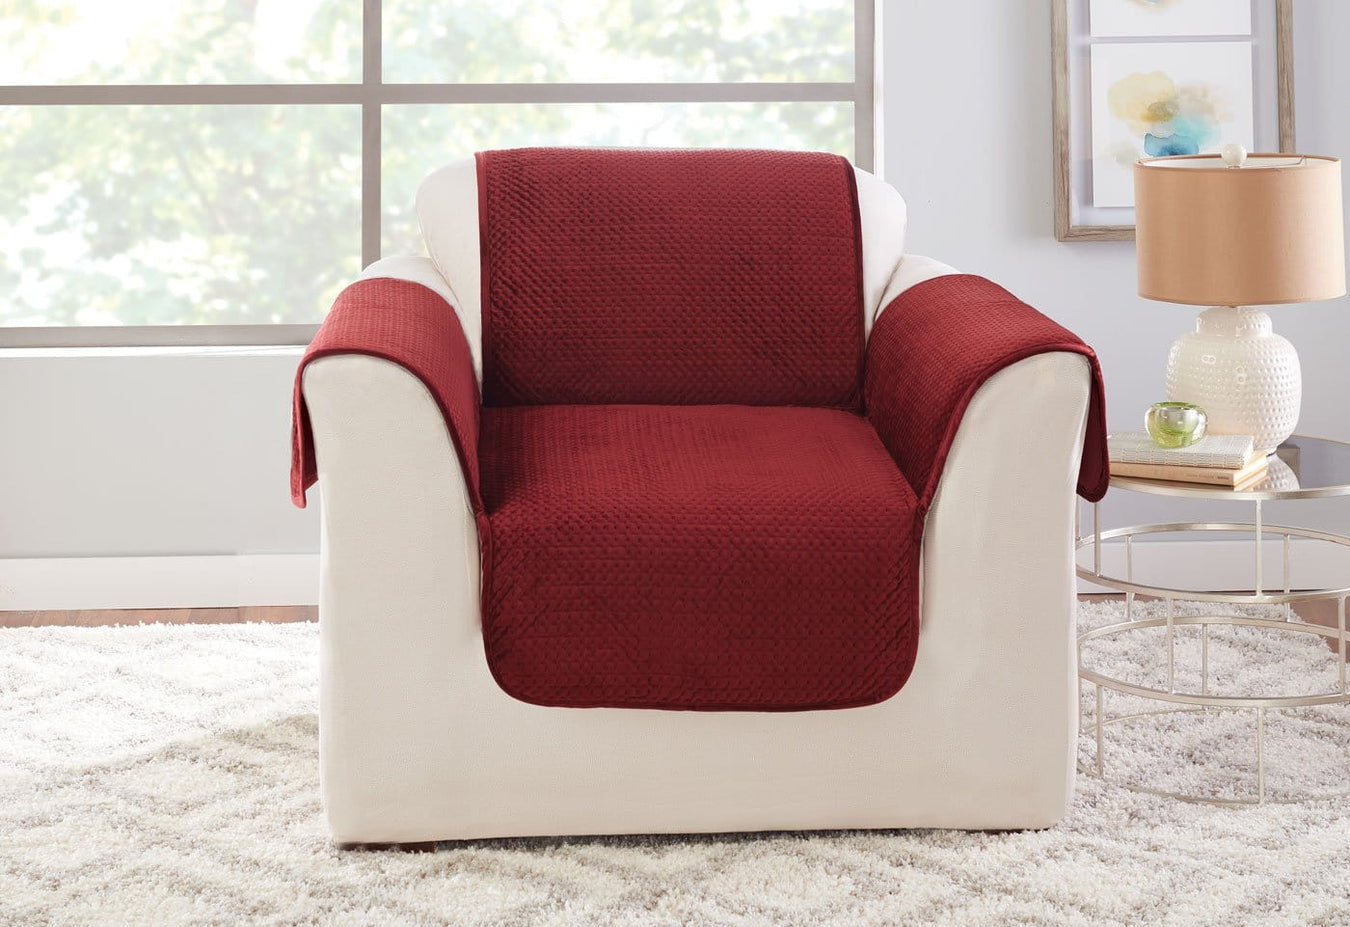 Elegant Pick Stitch Chair Furniture Cover